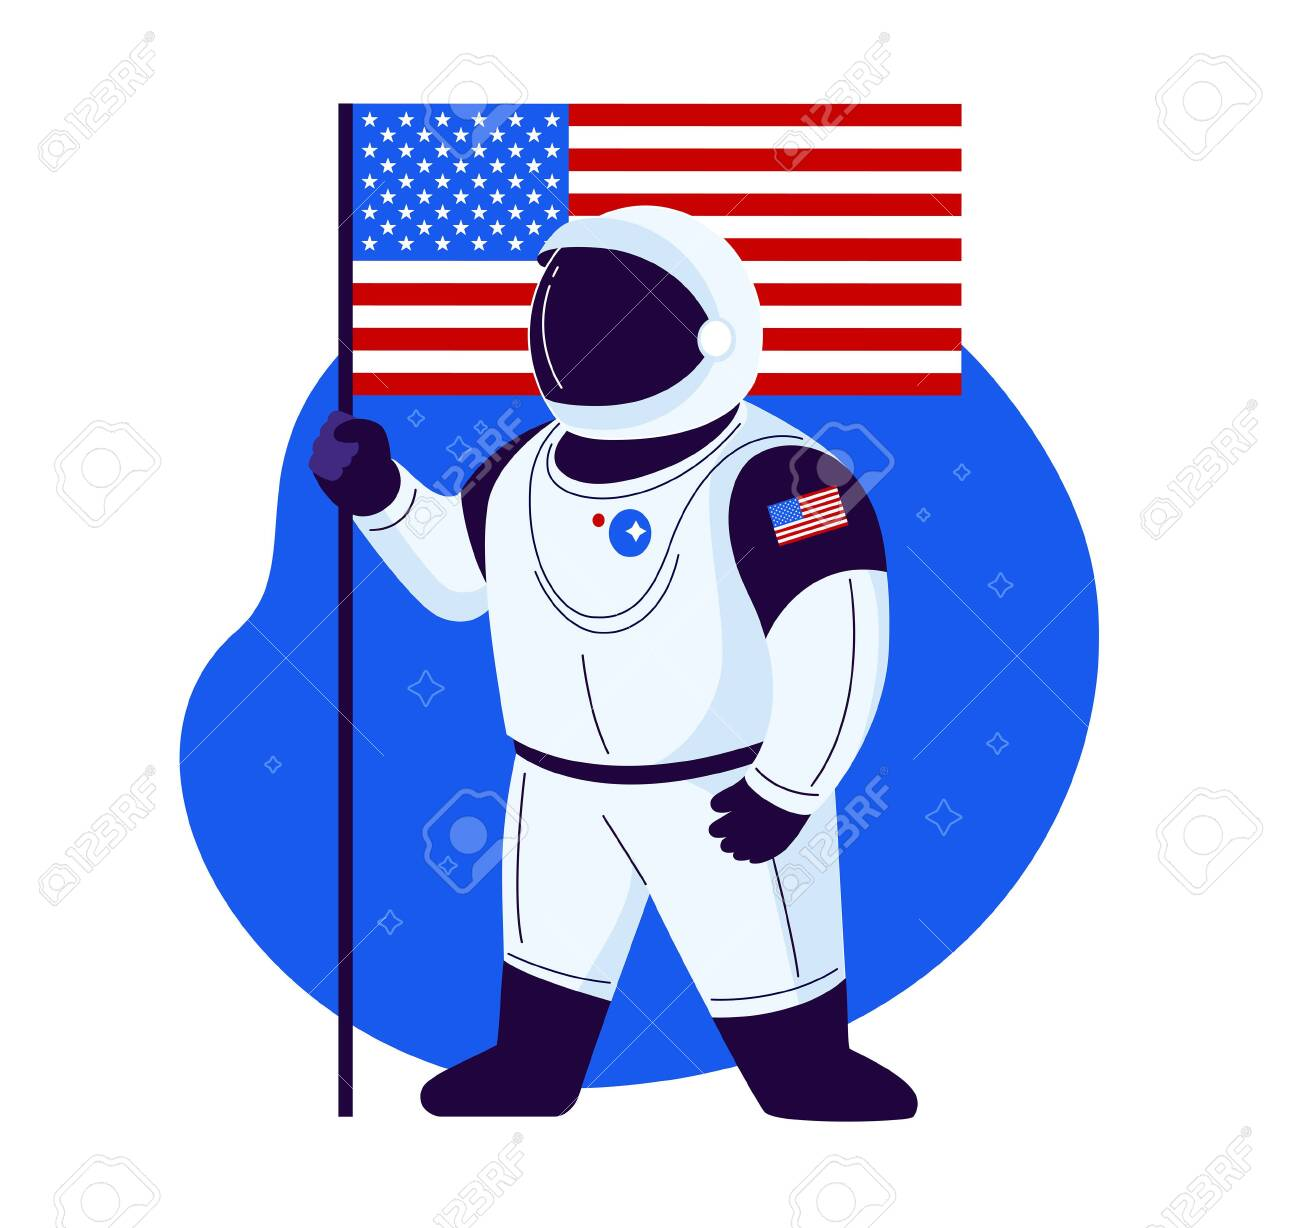 American astronaut stands with American flag in a new space suit ready to launch and proud of the USA space exploration - illustration in a flat trendy style isolated on white background - 149694532